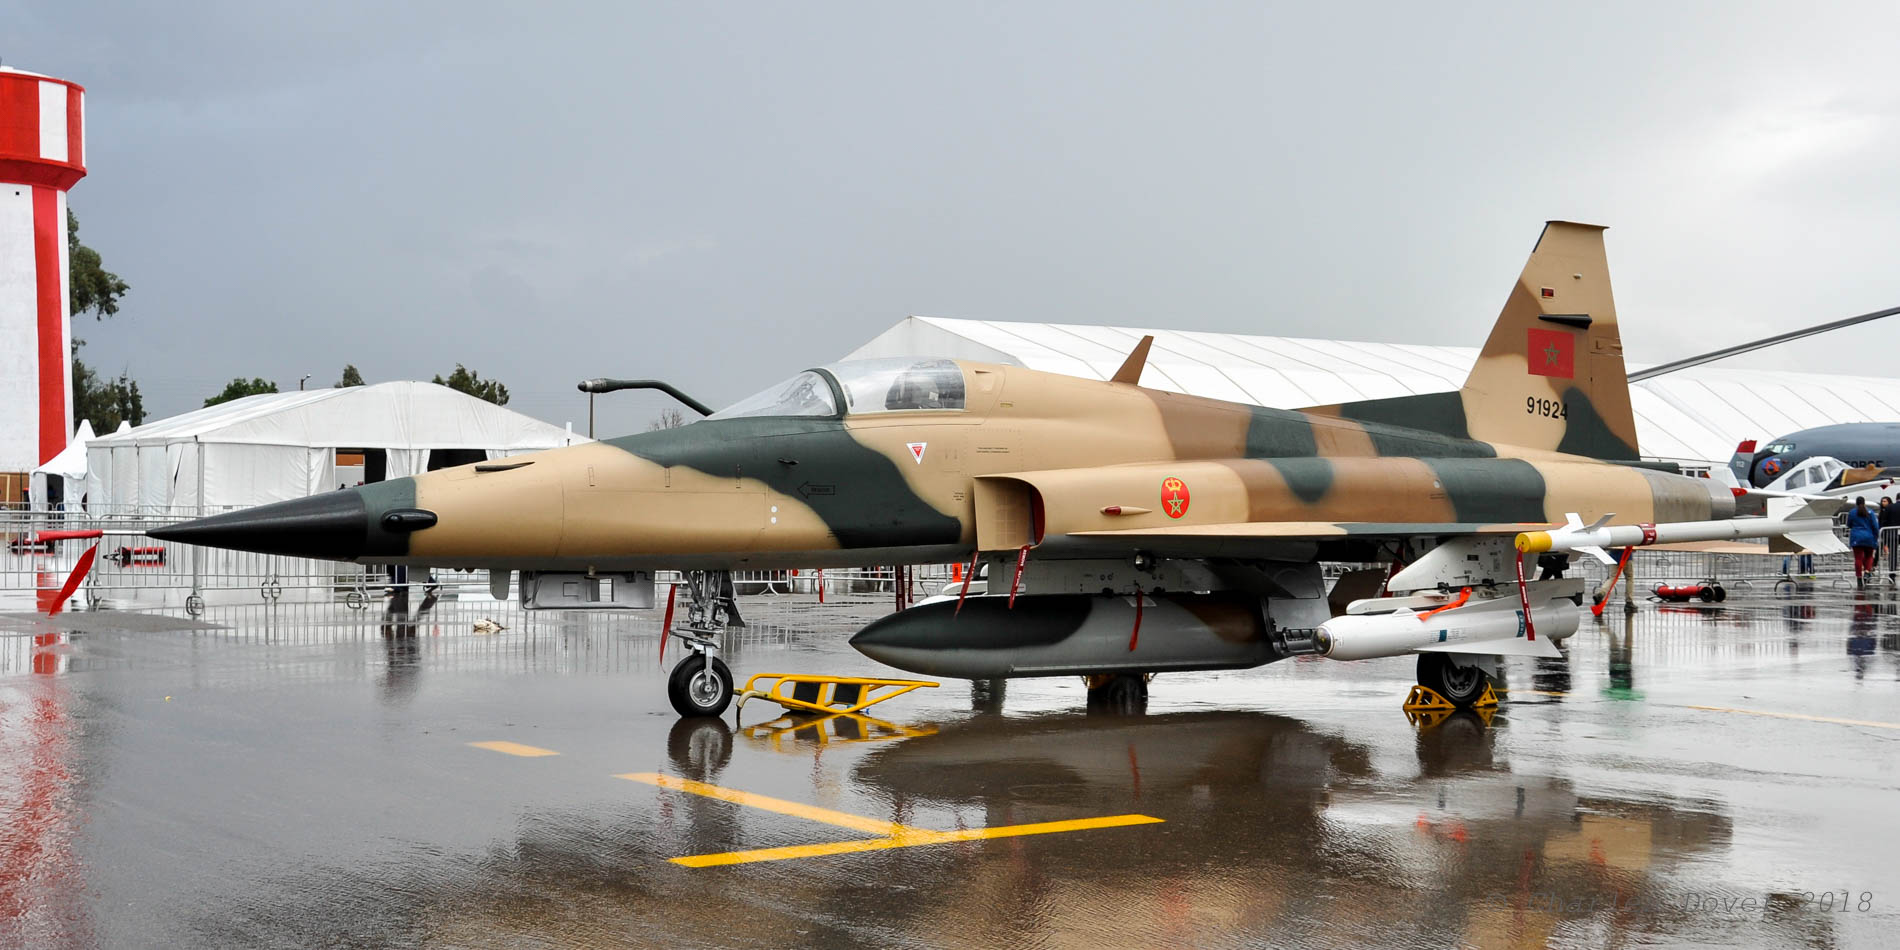 FRA: Photos F-5 marocains / Moroccan F-5  - Page 12 44013272740_2d6fa62d0c_o